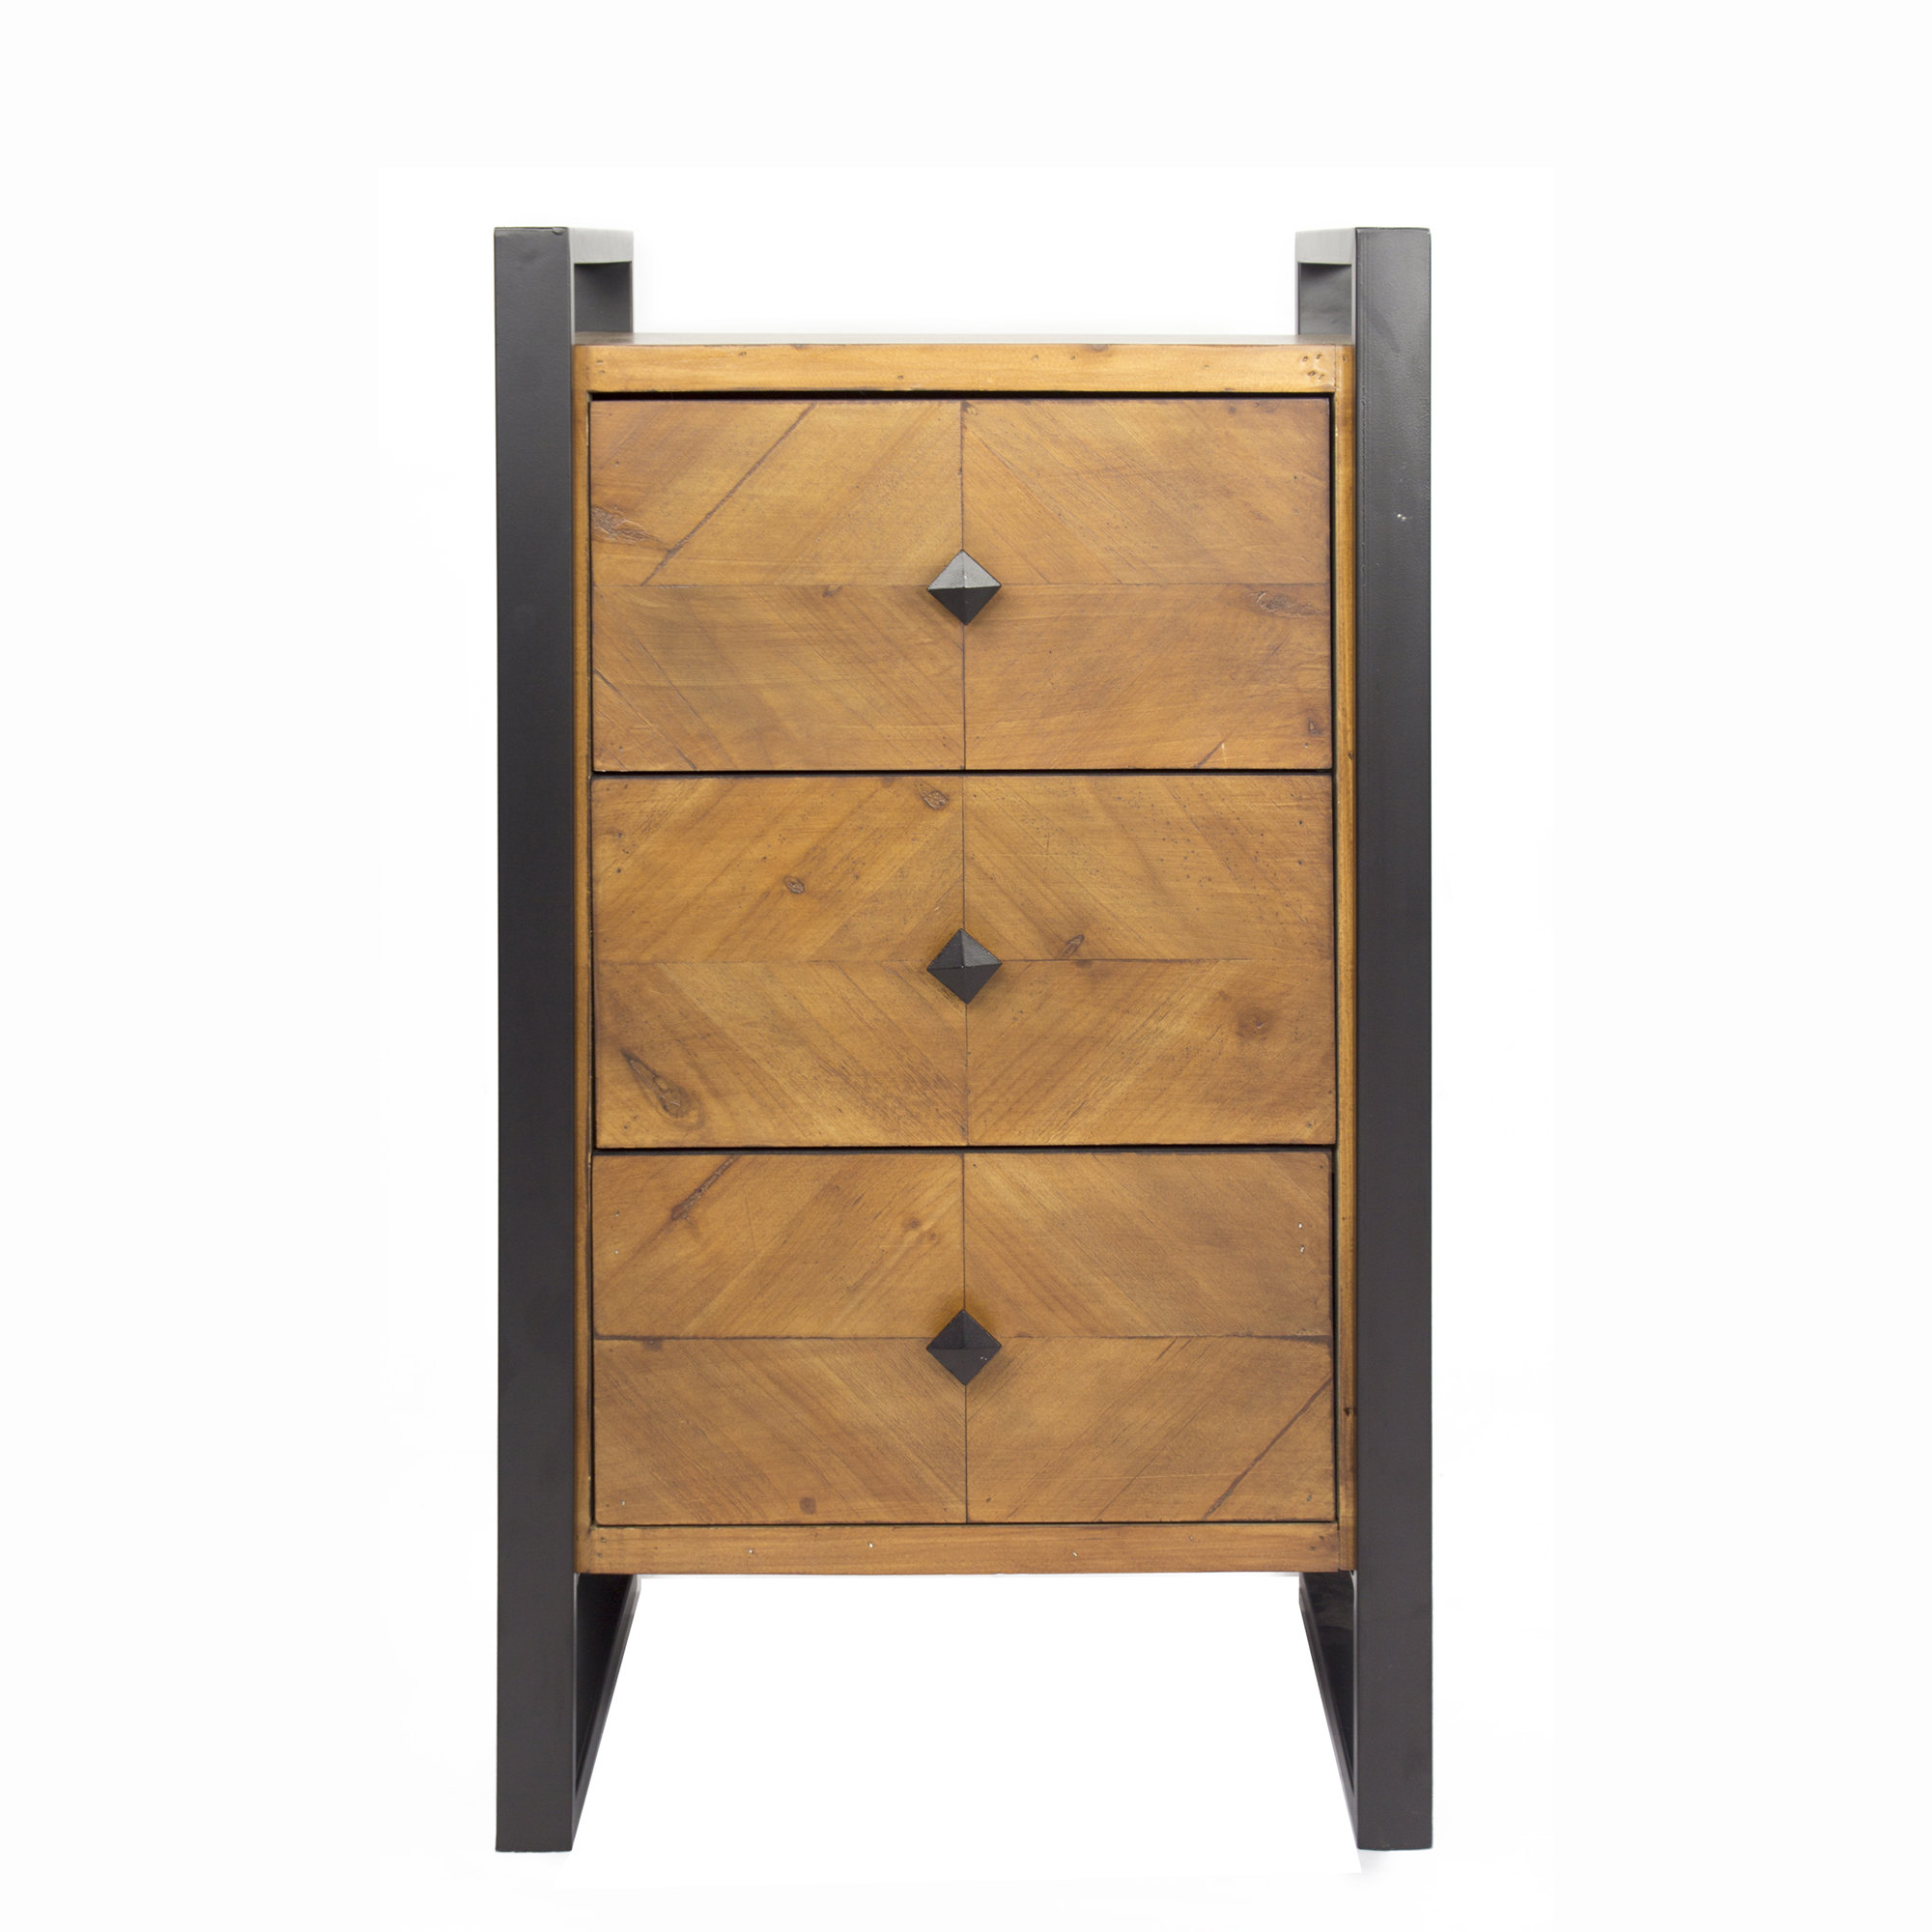 stories delphine drawer end table drawers legacy classic glass dining top wooden nest tables rustic bedside mirrored furniture living room dark brown couch ashley black friday